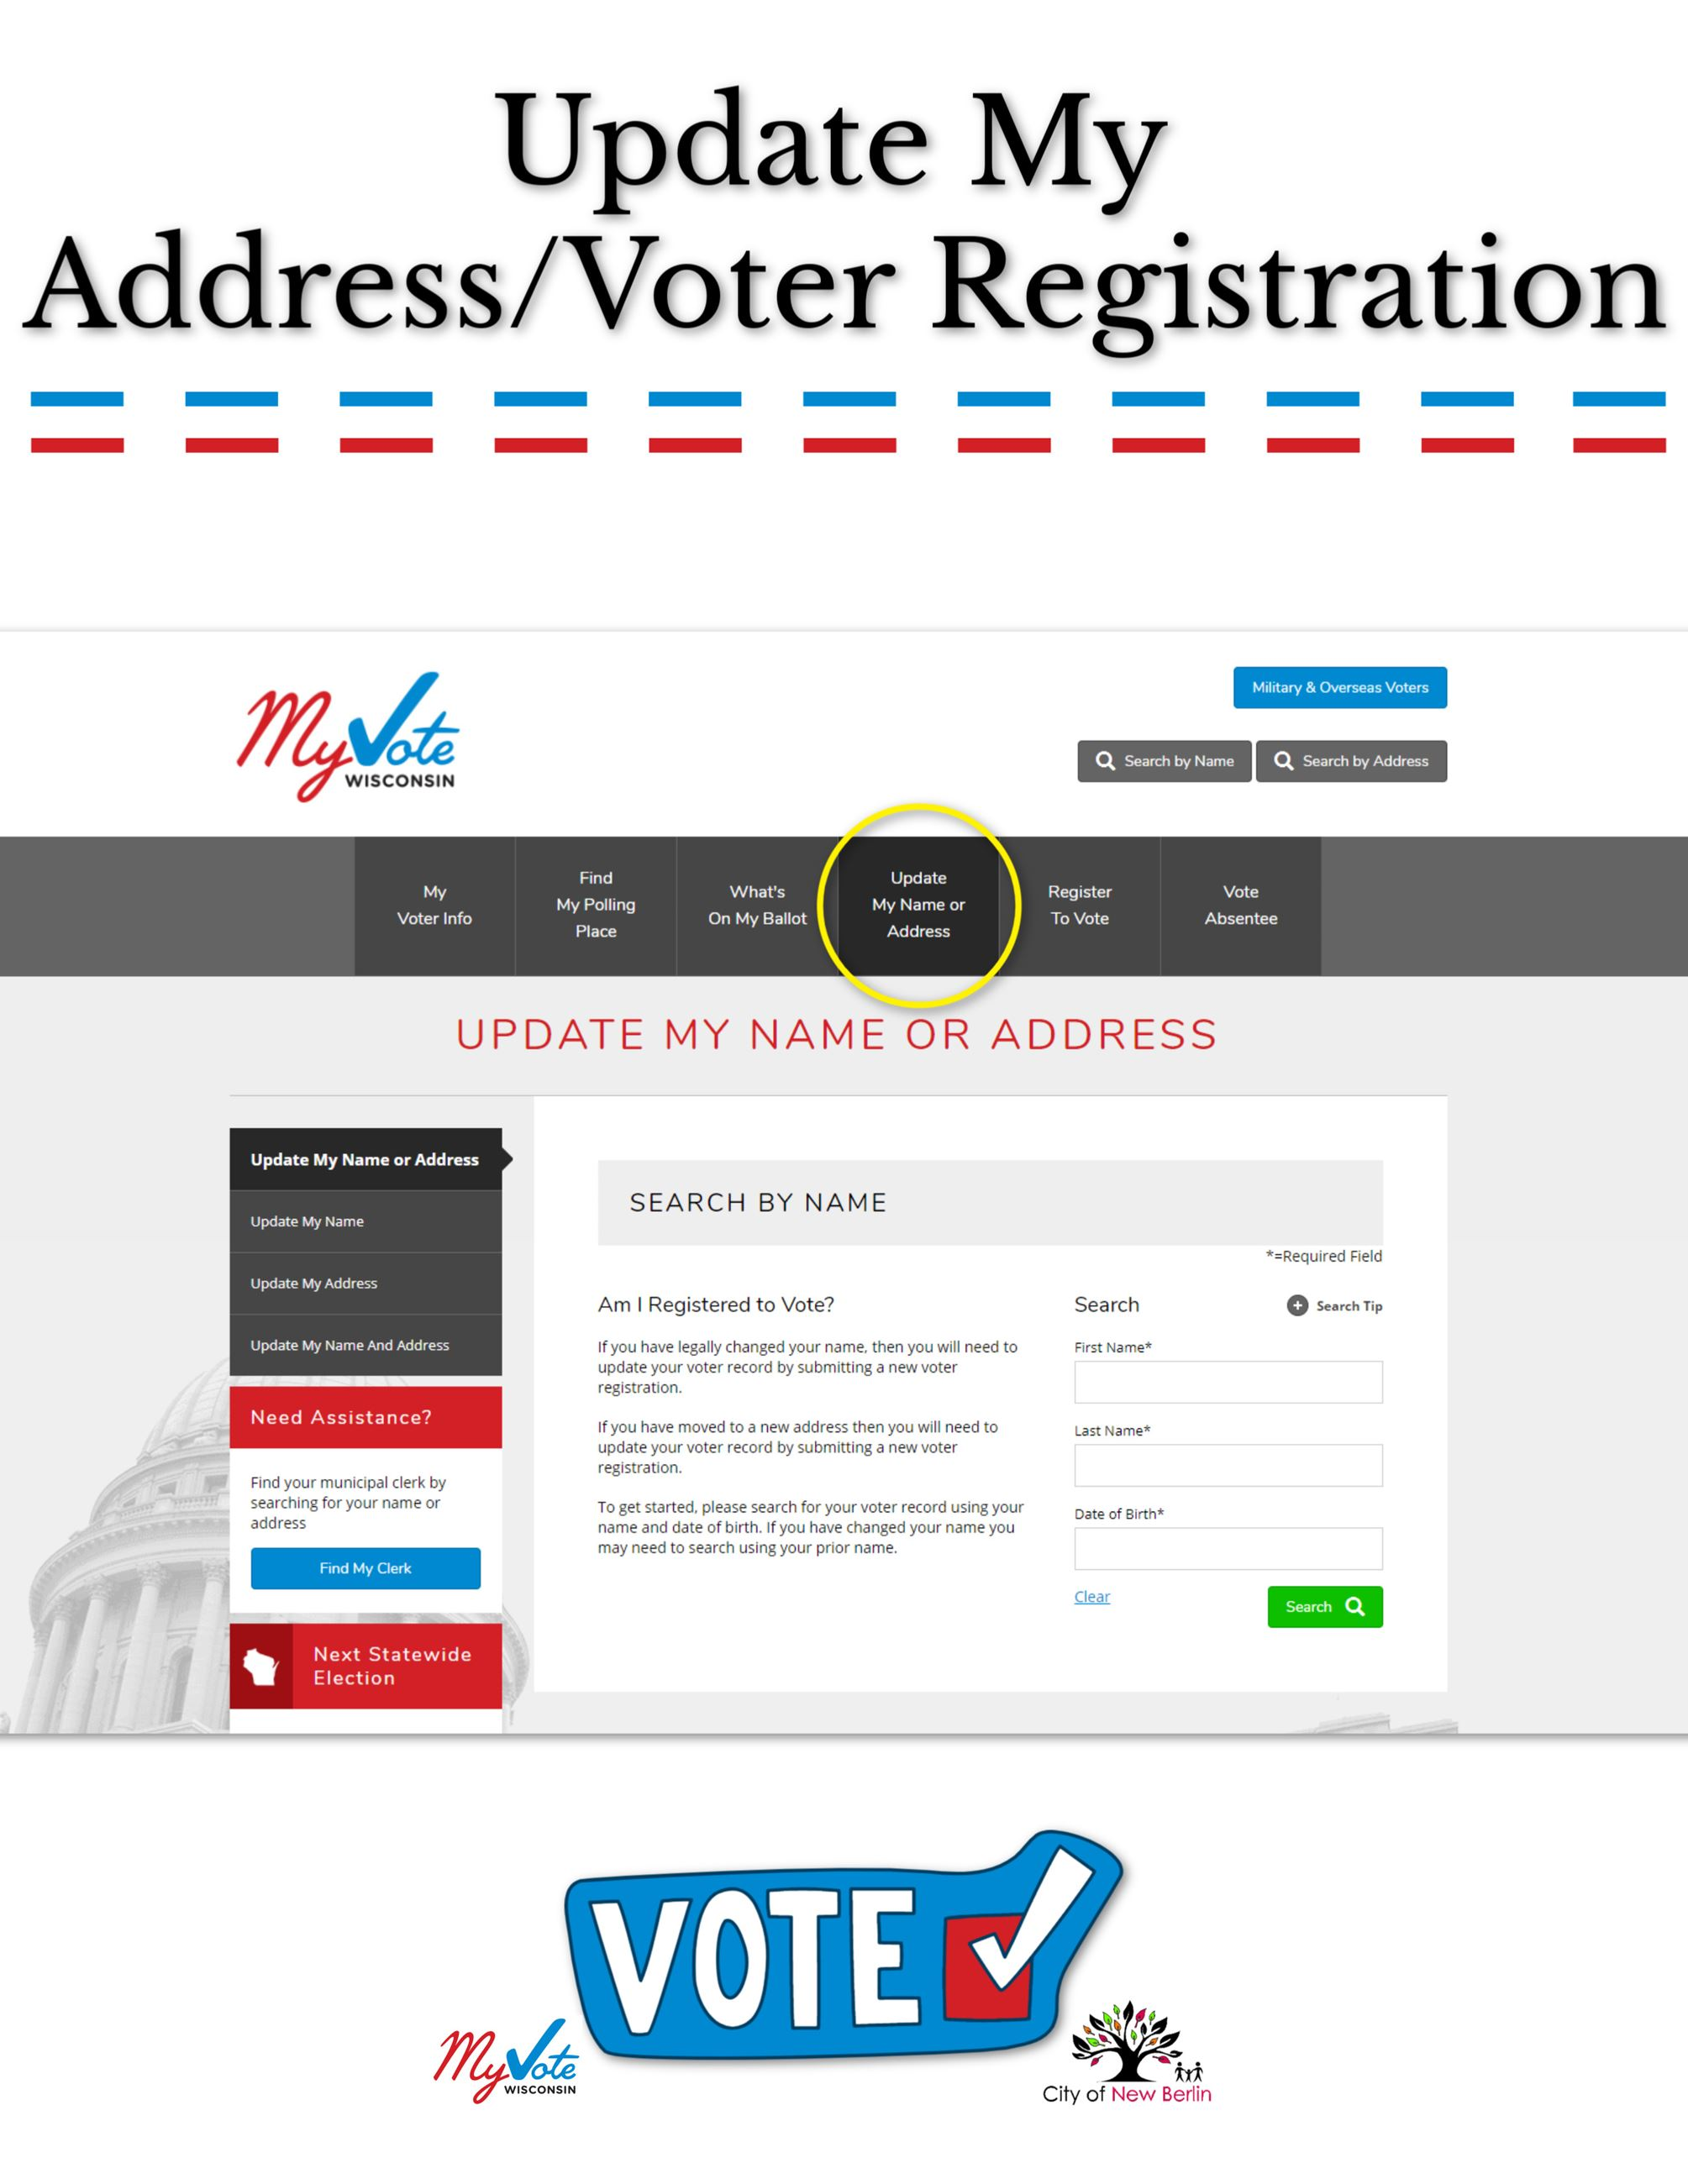 Update my Address_Voter Registration